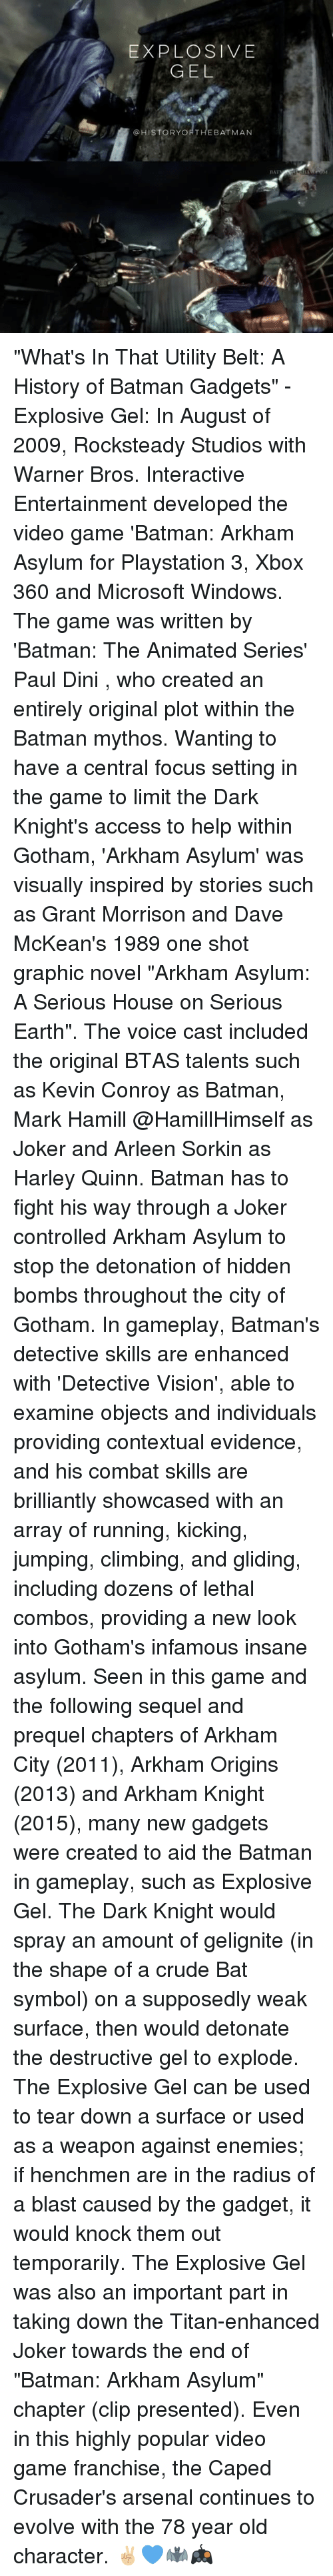 """Arsenal, Batman, and Climbing: EXPLOSIVE  GEL  @HISTORYORTHEBATMAN  RAT """"What's In That Utility Belt: A History of Batman Gadgets"""" - Explosive Gel: In August of 2009, Rocksteady Studios with Warner Bros. Interactive Entertainment developed the video game 'Batman: Arkham Asylum for Playstation 3, Xbox 360 and Microsoft Windows. The game was written by 'Batman: The Animated Series' Paul Dini , who created an entirely original plot within the Batman mythos. Wanting to have a central focus setting in the game to limit the Dark Knight's access to help within Gotham, 'Arkham Asylum' was visually inspired by stories such as Grant Morrison and Dave McKean's 1989 one shot graphic novel """"Arkham Asylum: A Serious House on Serious Earth"""". The voice cast included the original BTAS talents such as Kevin Conroy as Batman, Mark Hamill @HamillHimself as Joker and Arleen Sorkin as Harley Quinn. Batman has to fight his way through a Joker controlled Arkham Asylum to stop the detonation of hidden bombs throughout the city of Gotham. In gameplay, Batman's detective skills are enhanced with 'Detective Vision', able to examine objects and individuals providing contextual evidence, and his combat skills are brilliantly showcased with an array of running, kicking, jumping, climbing, and gliding, including dozens of lethal combos, providing a new look into Gotham's infamous insane asylum. Seen in this game and the following sequel and prequel chapters of Arkham City (2011), Arkham Origins (2013) and Arkham Knight (2015), many new gadgets were created to aid the Batman in gameplay, such as Explosive Gel. The Dark Knight would spray an amount of gelignite (in the shape of a crude Bat symbol) on a supposedly weak surface, then would detonate the destructive gel to explode. The Explosive Gel can be used to tear down a surface or used as a weapon against enemies; if henchmen are in the radius of a blast caused by the gadget, it would knock them out temporarily. The Explosive Gel was also an impor"""